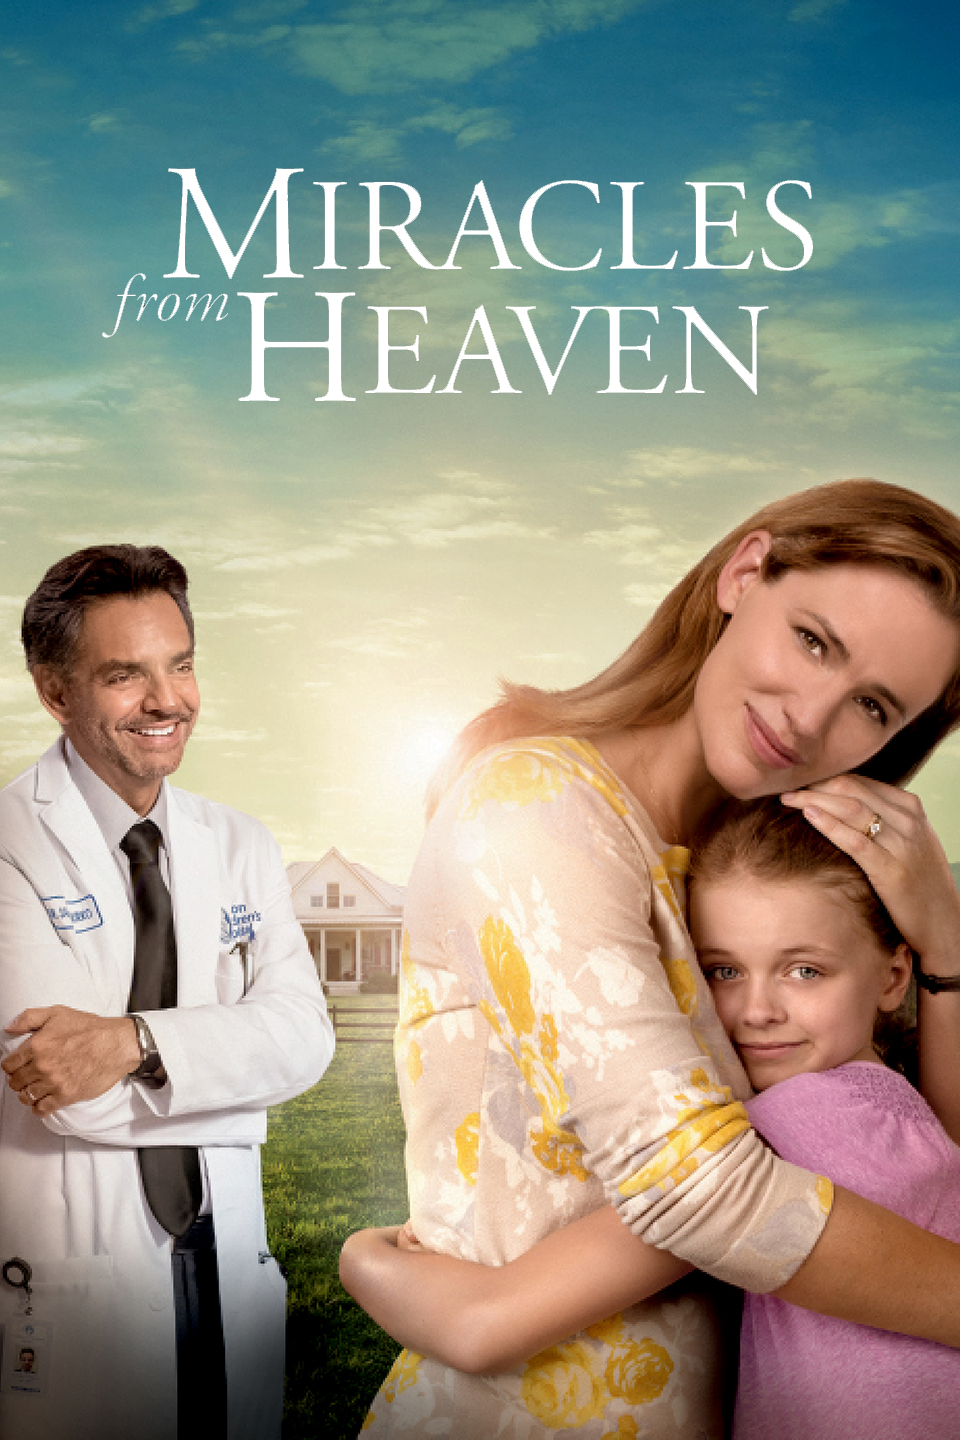 Miracles-From-Heaven-960x1440-Portrate